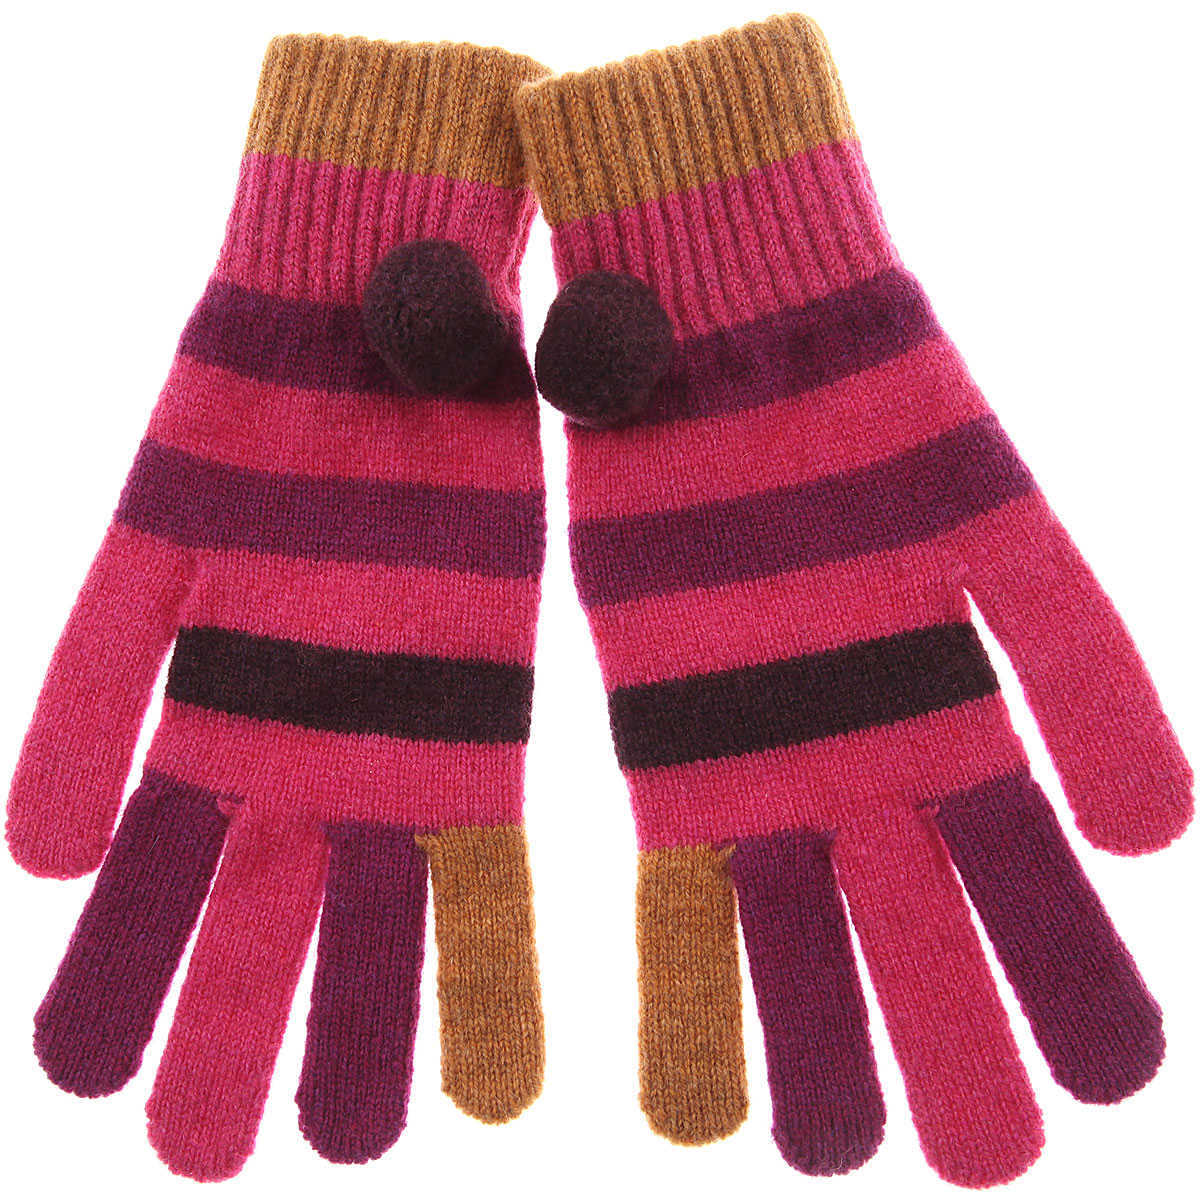 Paul Smith Gloves for Women Pink Canada - GOOFASH - Womens GLOVES